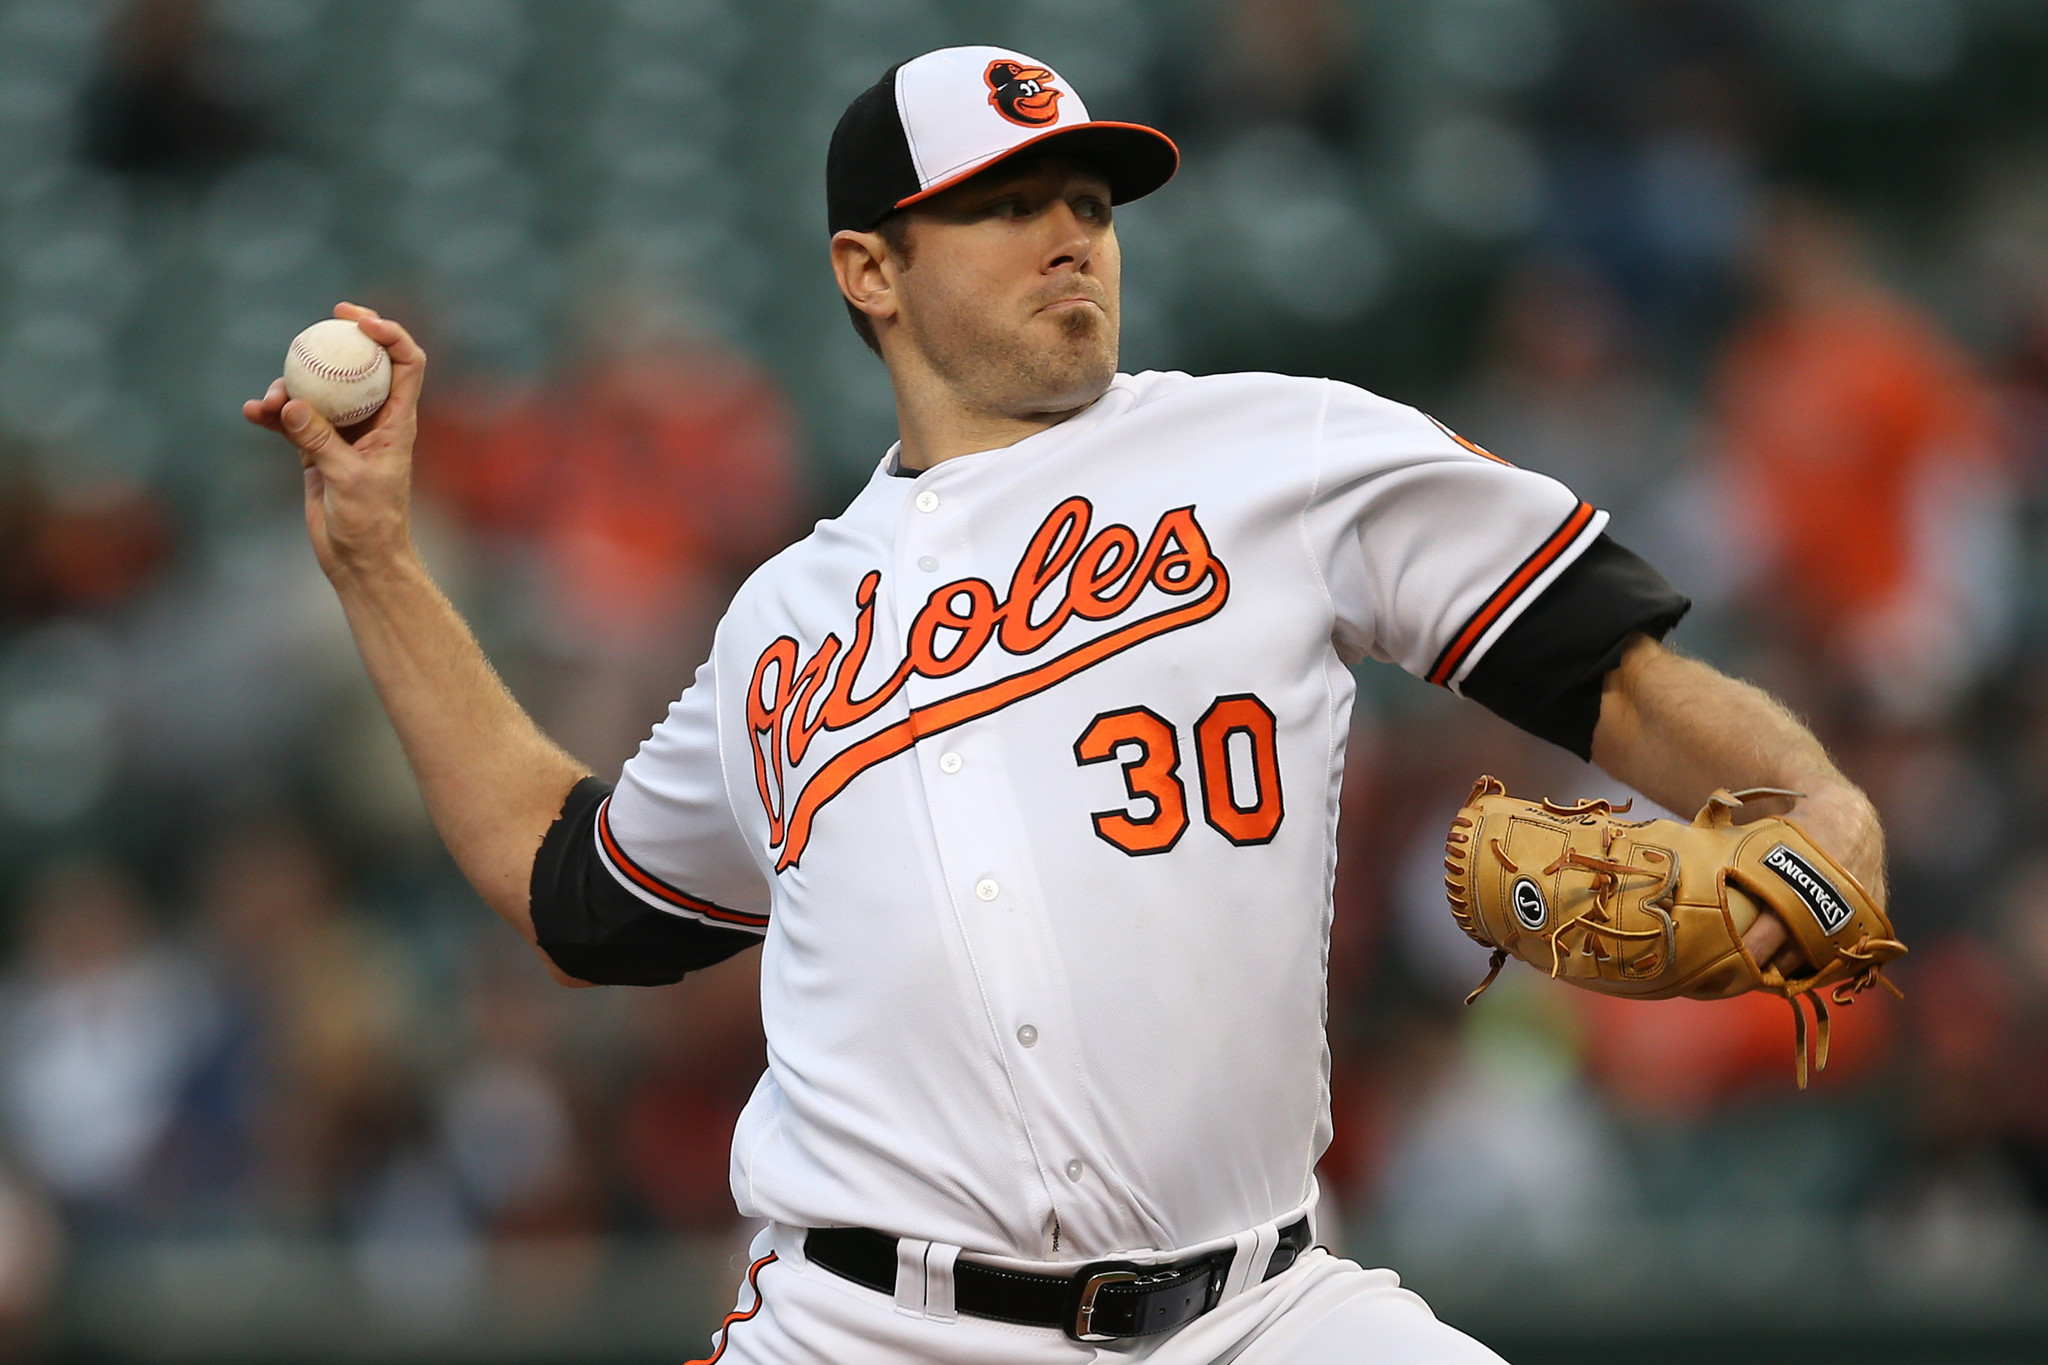 Bal-locating-offspeed-pitches-key-in-chris-tillman-s-success-20160503